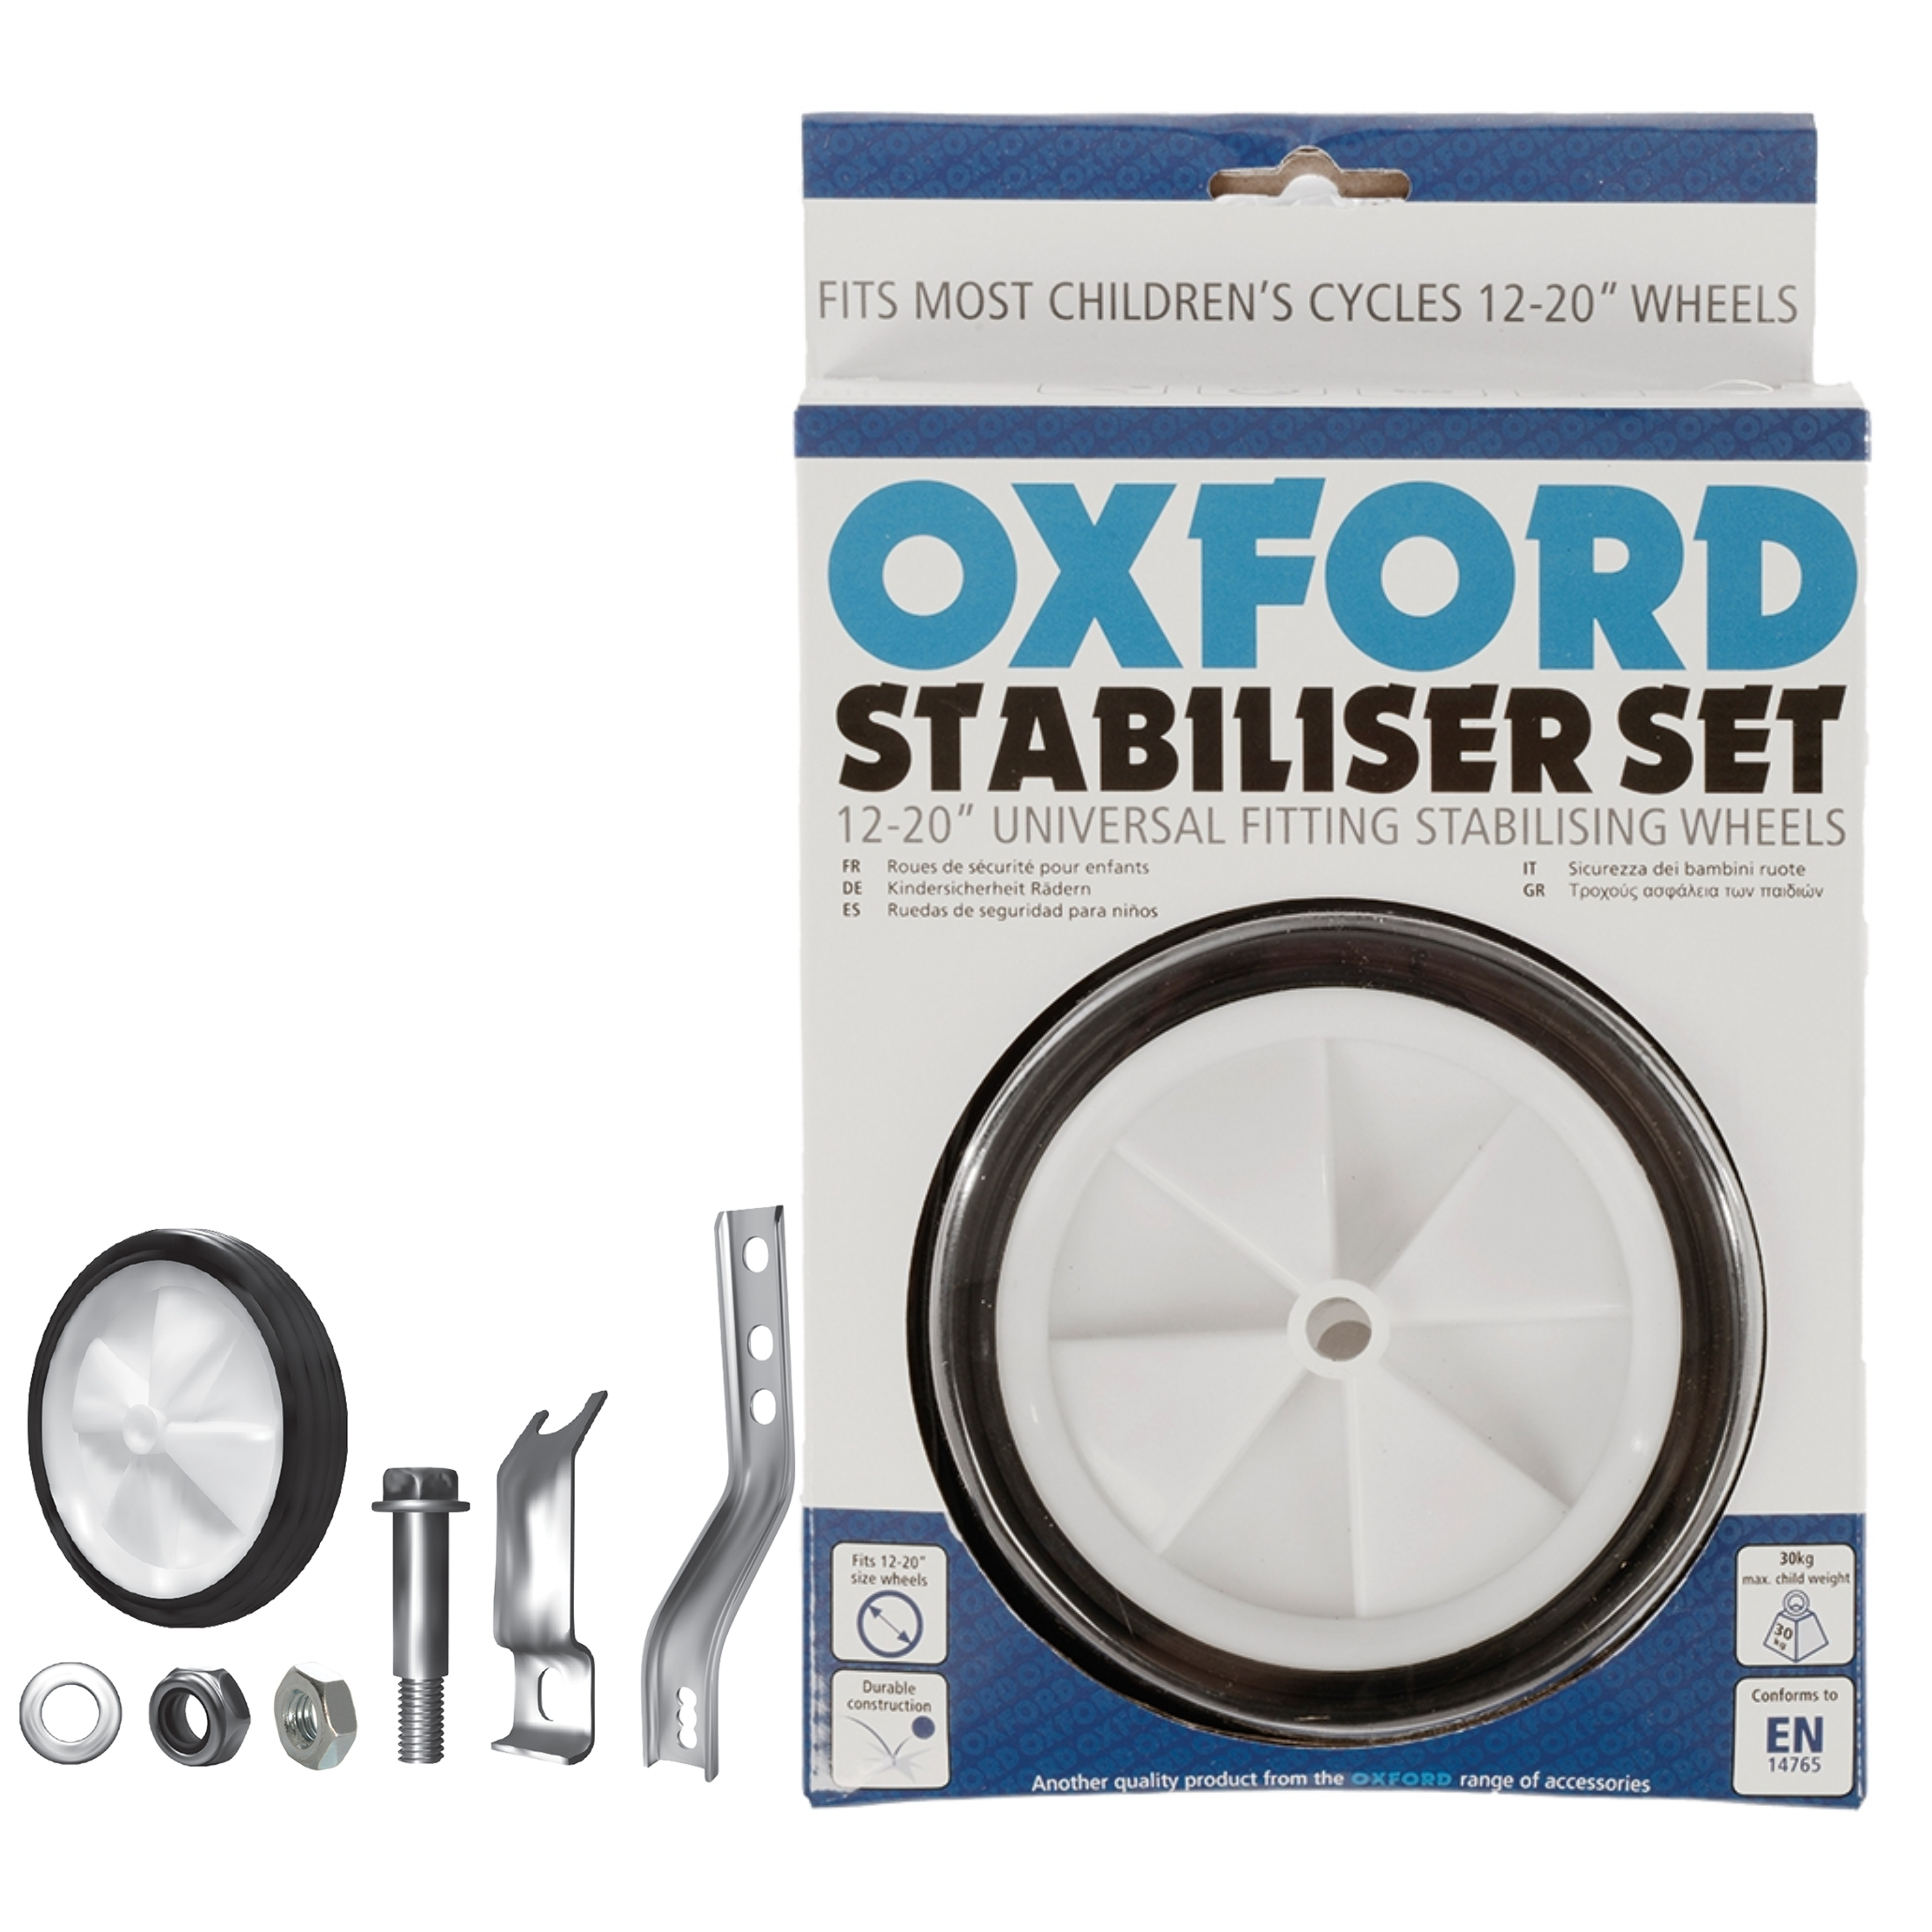 Oxford Bicycle Cycle Universal Stabiliser Set - 12-20